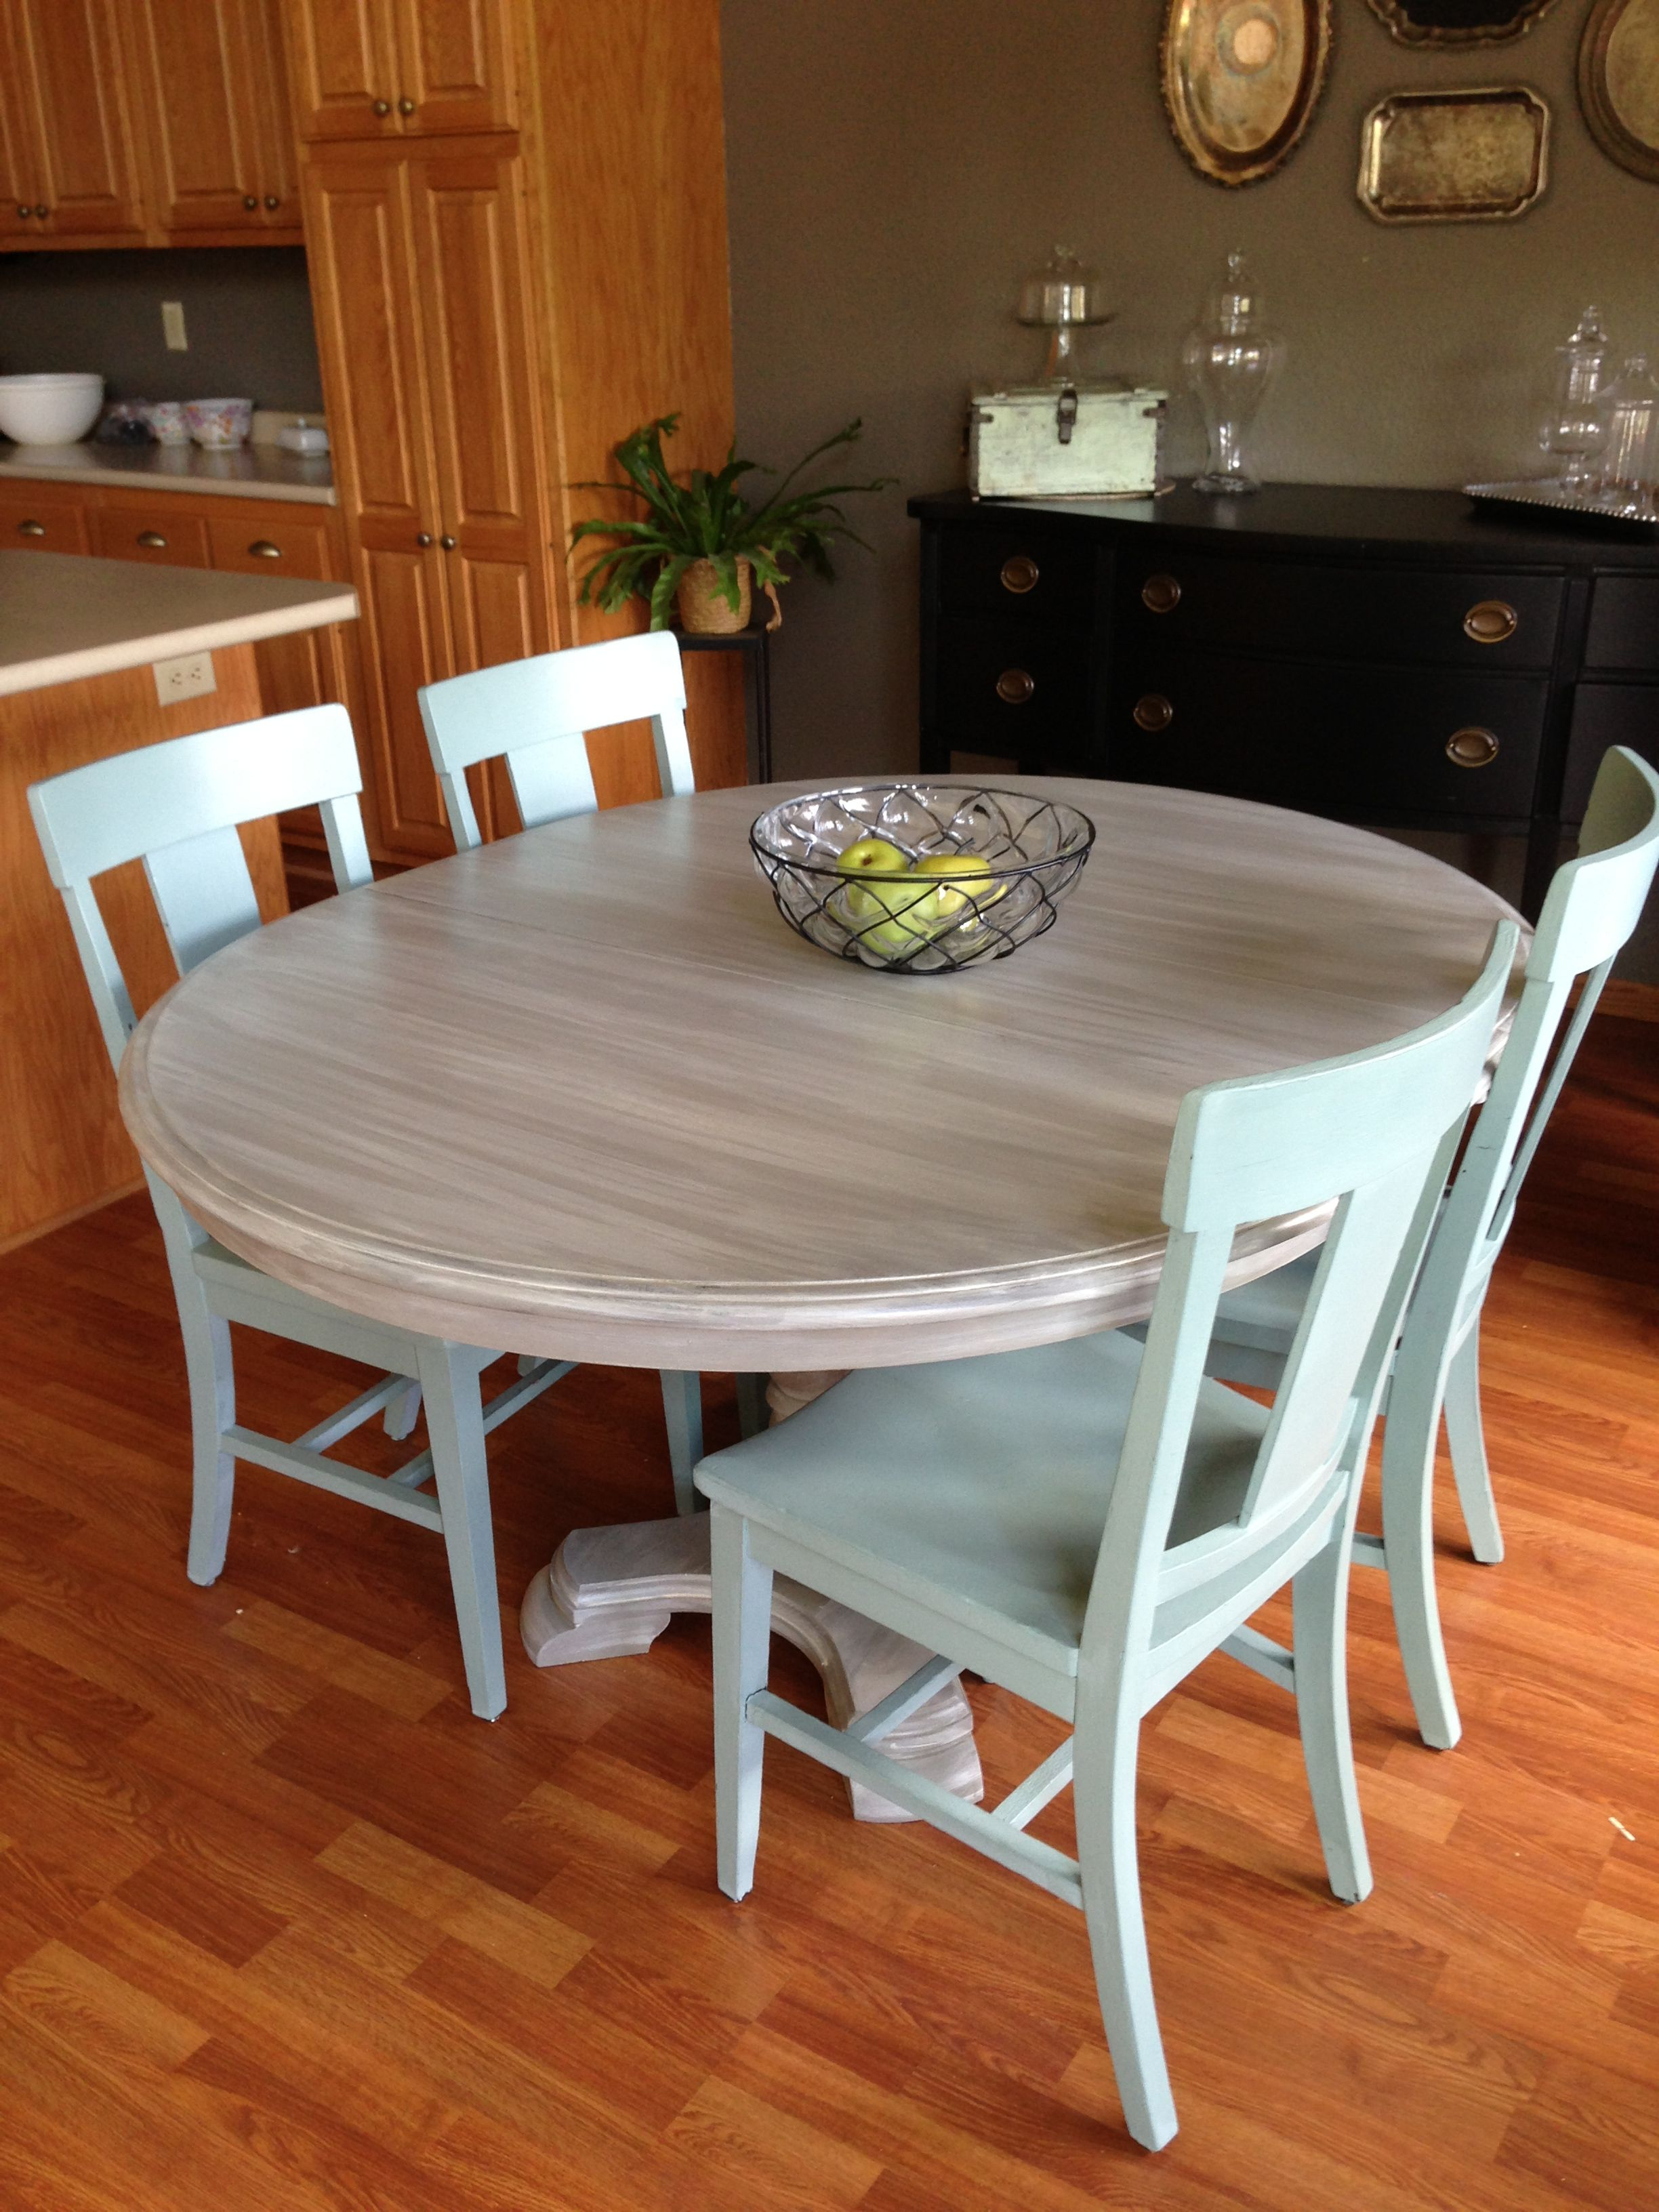 Pin By Karin Bagwell On My Projects Kitchen Table Makeover Painting Kitchen Chairs Painted Kitchen Tables